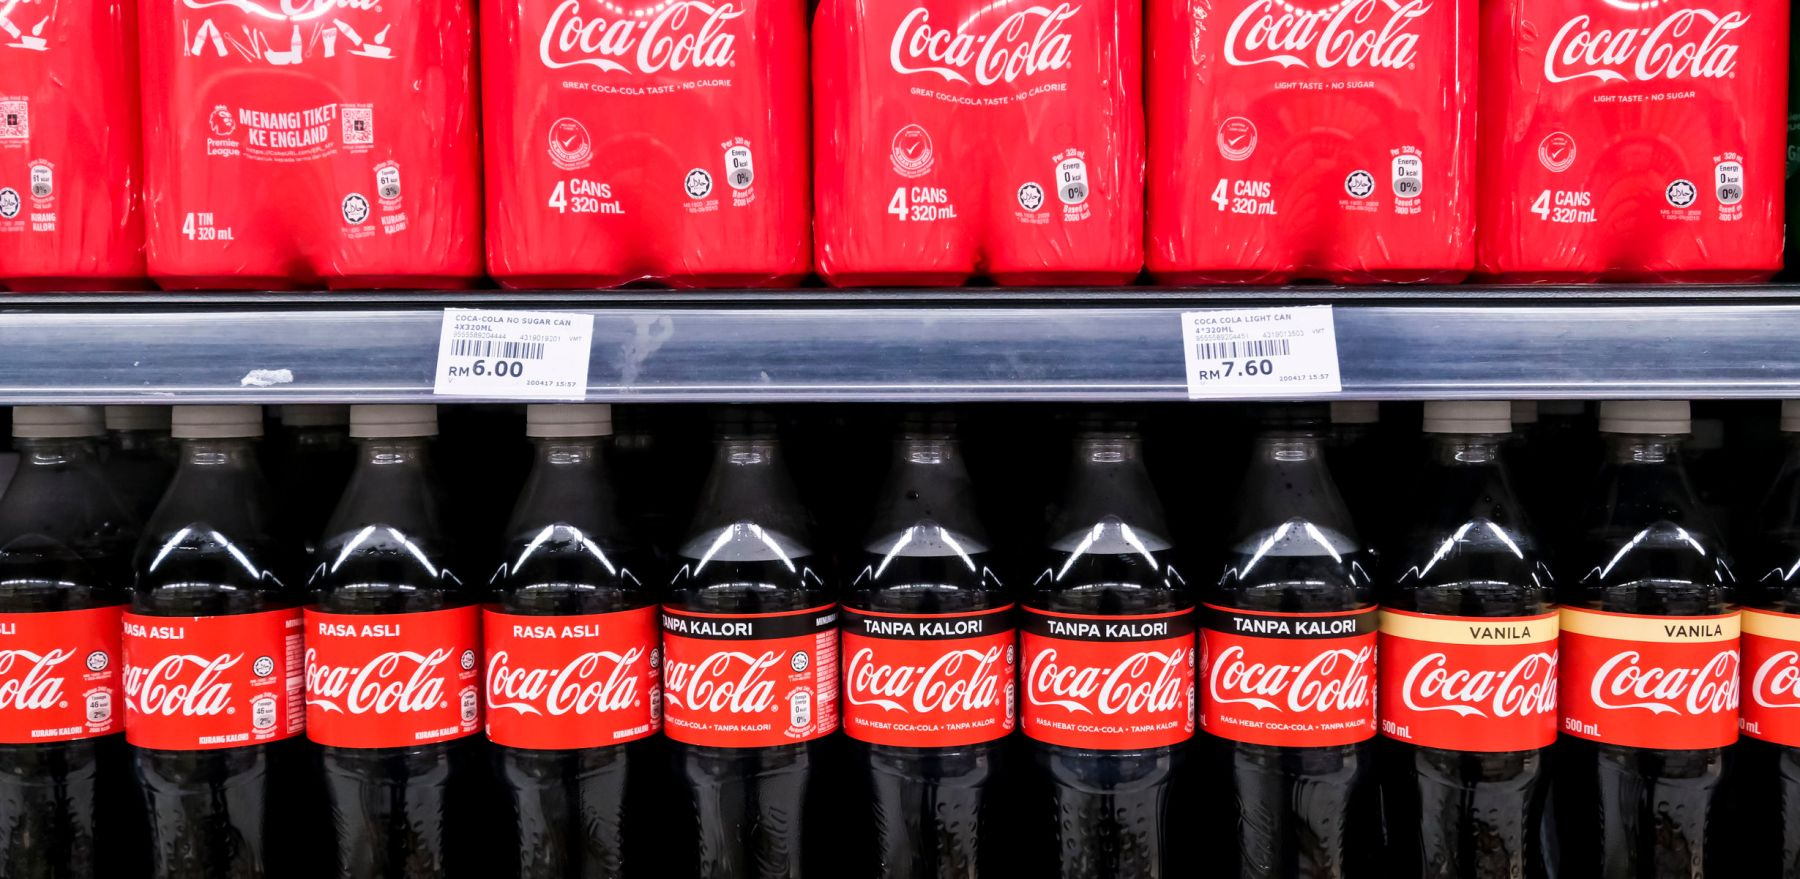 KUALA LUMPUR, MALAYSIA - MAY 04, 2020: Coca Cola product in bottles and cans on the shelves in a grocery store supermarket. Coke is a carbonated soft drink produced by The Coca-Cola Company.